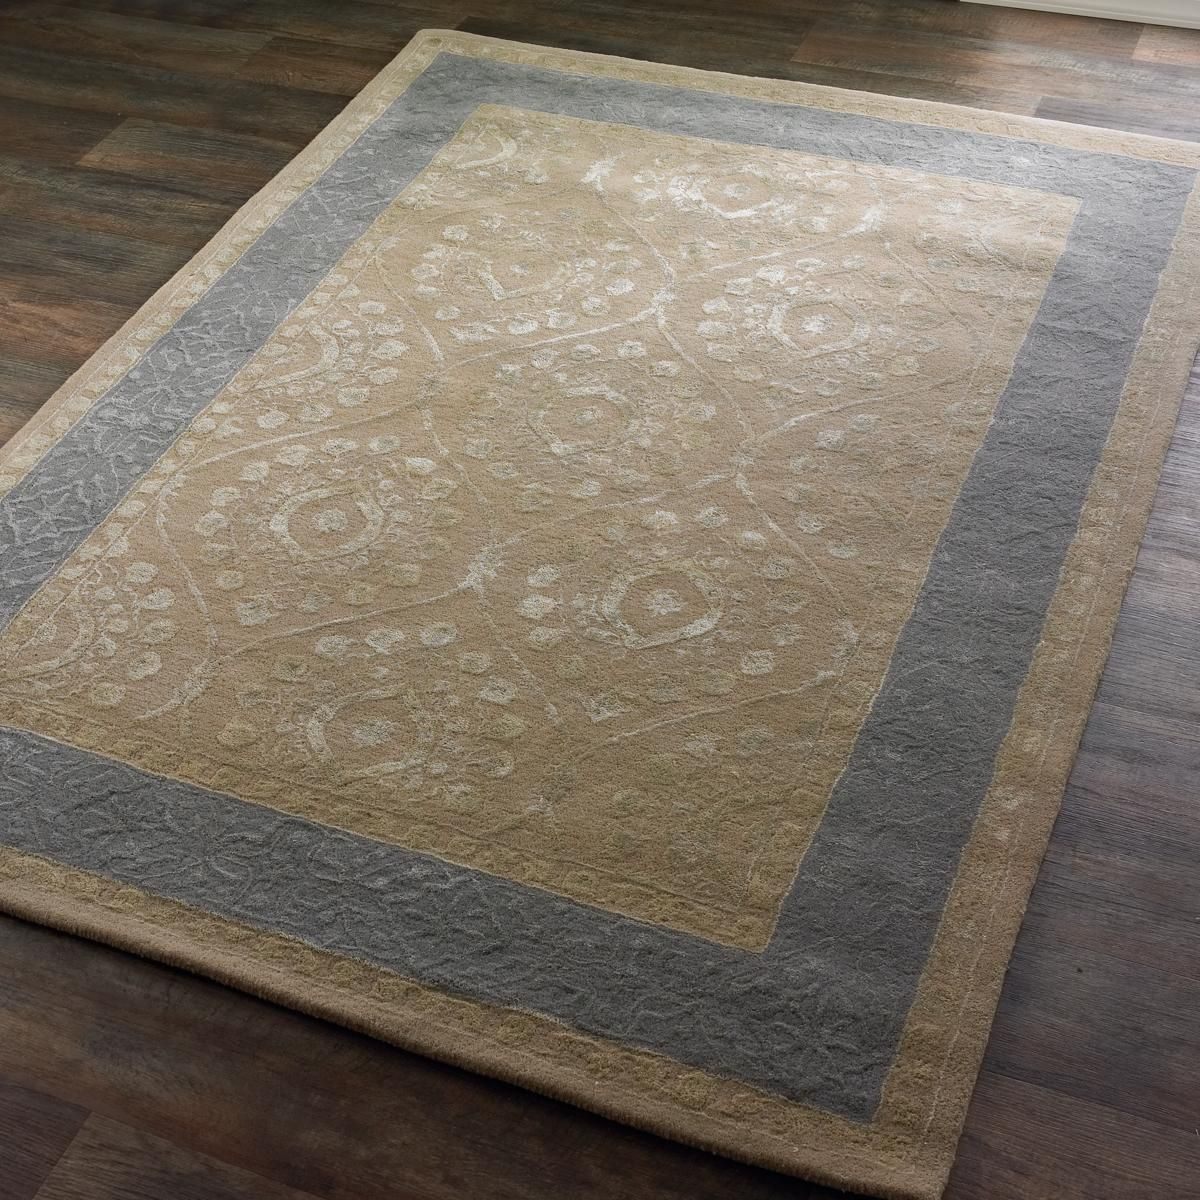 Taupe And Gray Morrocan Trellis Border Rug Subtle